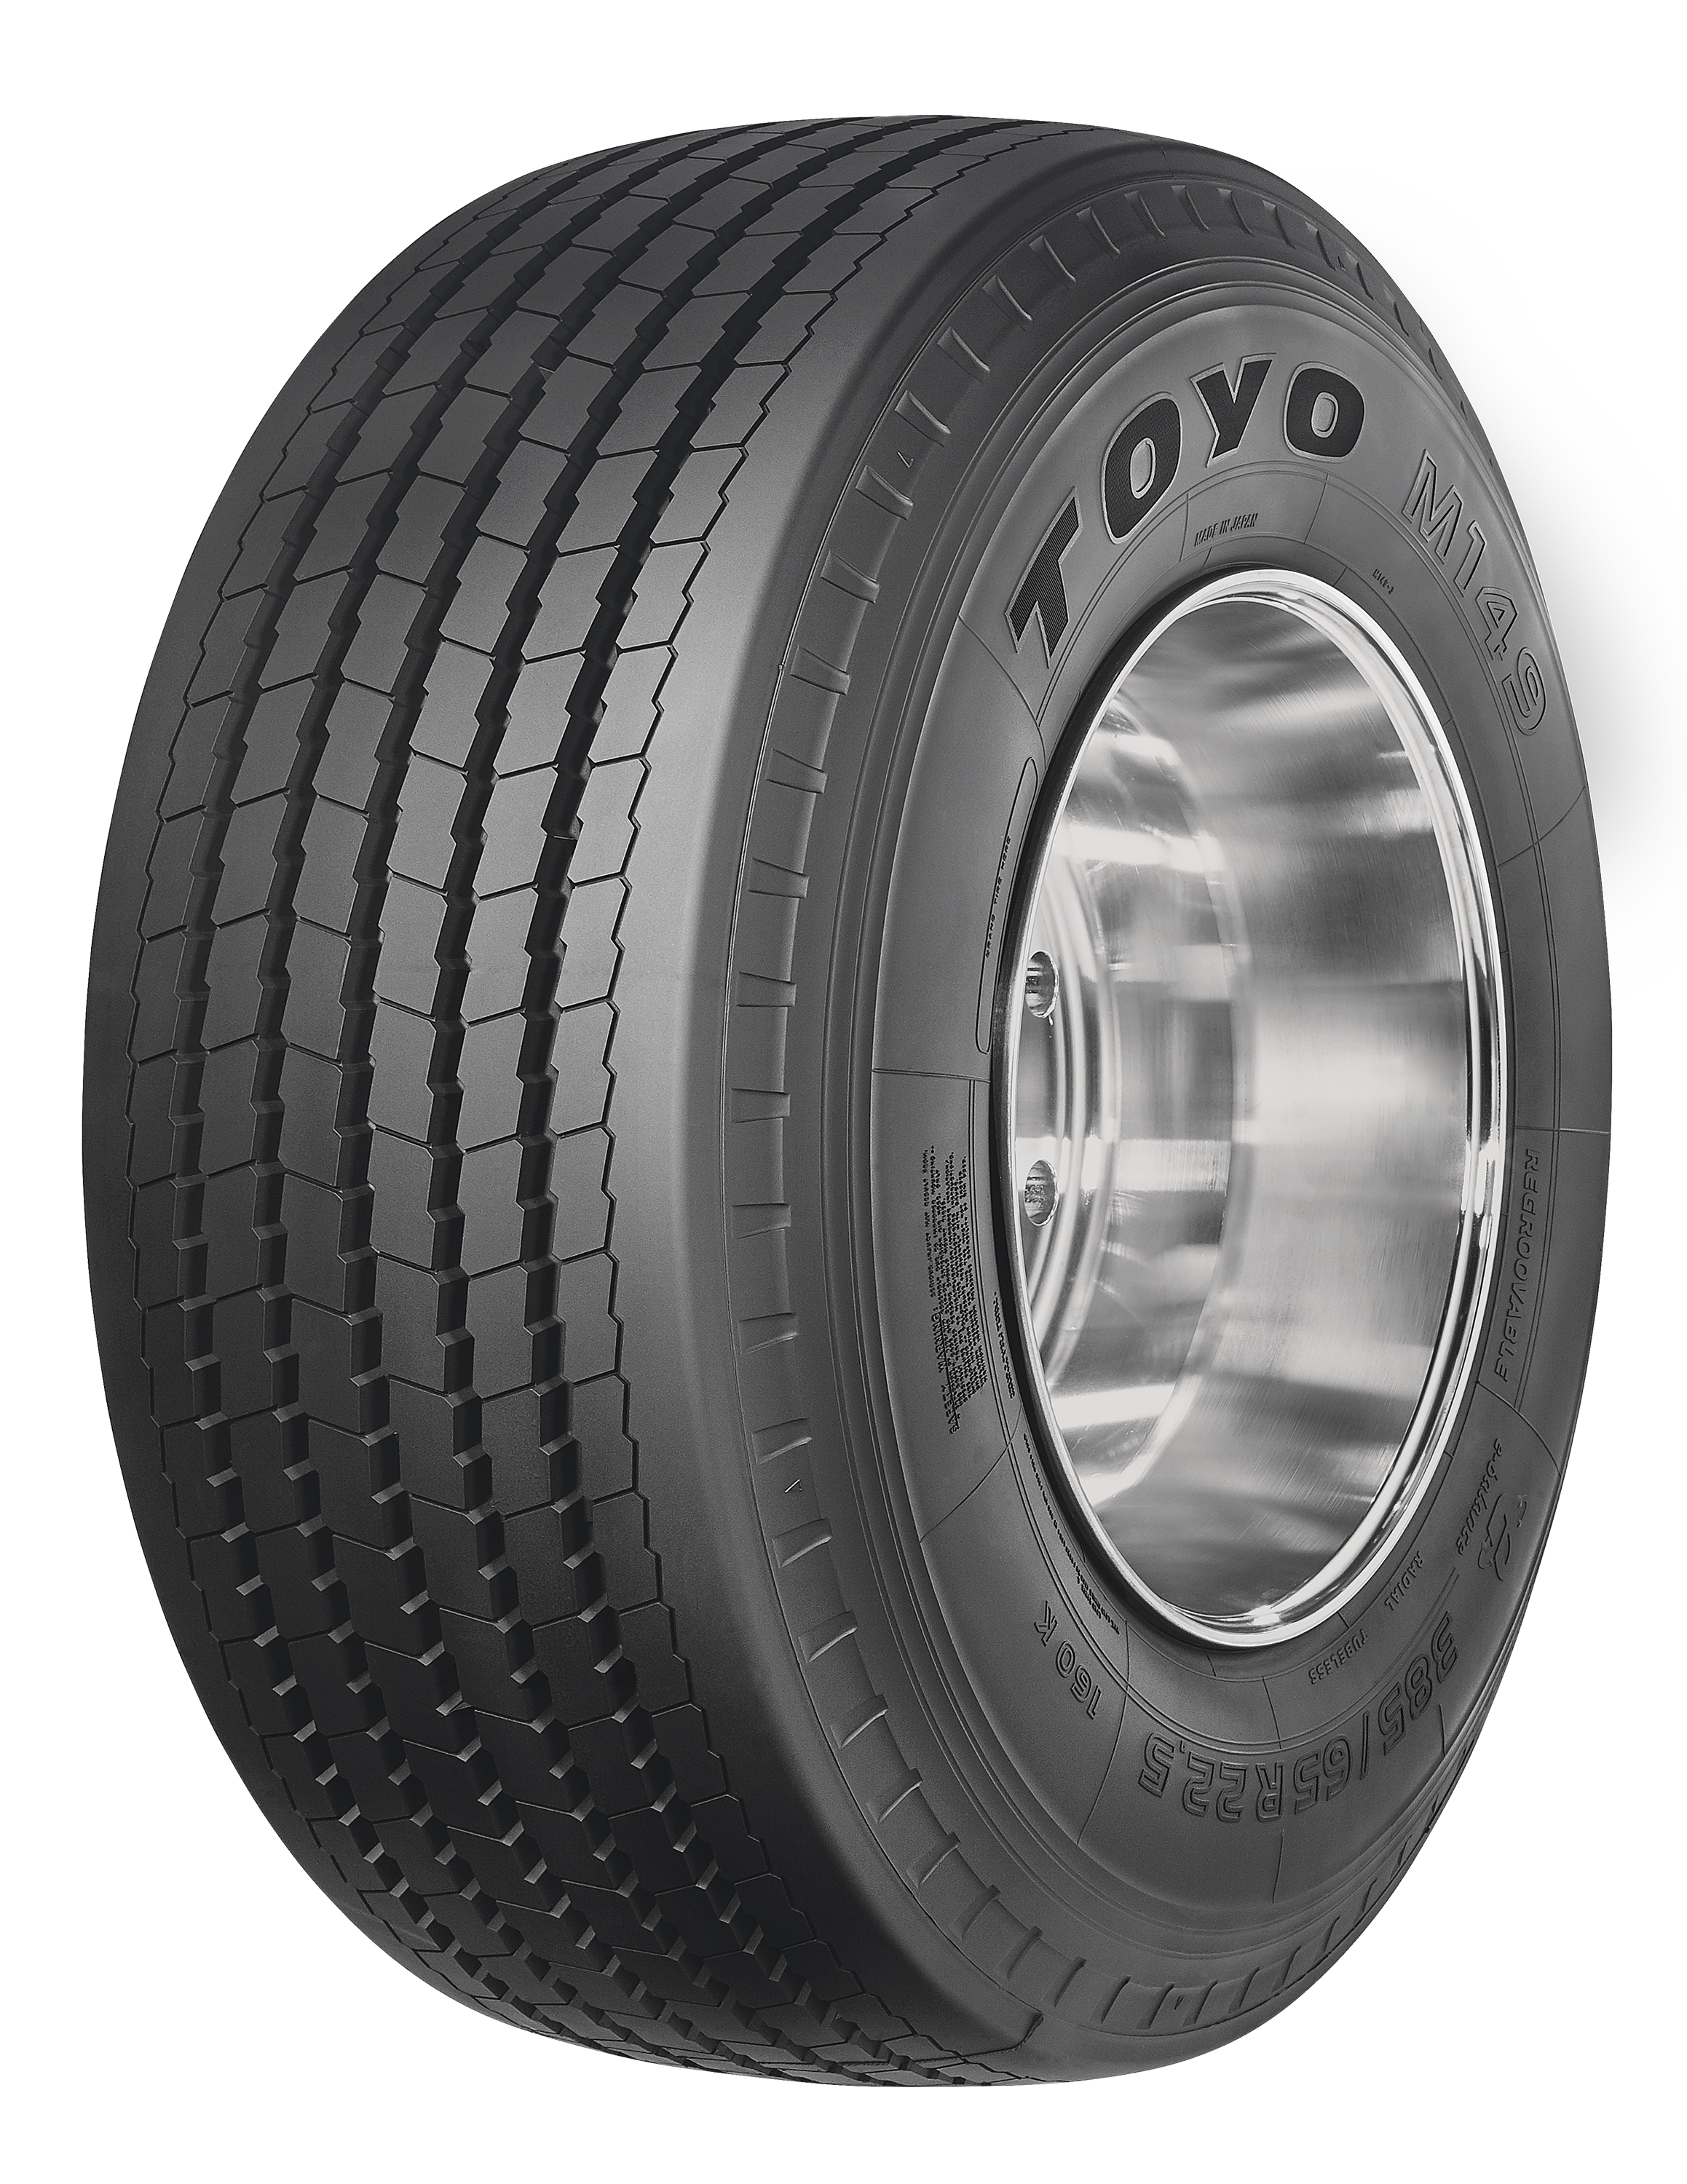 Toyo expands truck tire lineup with M149